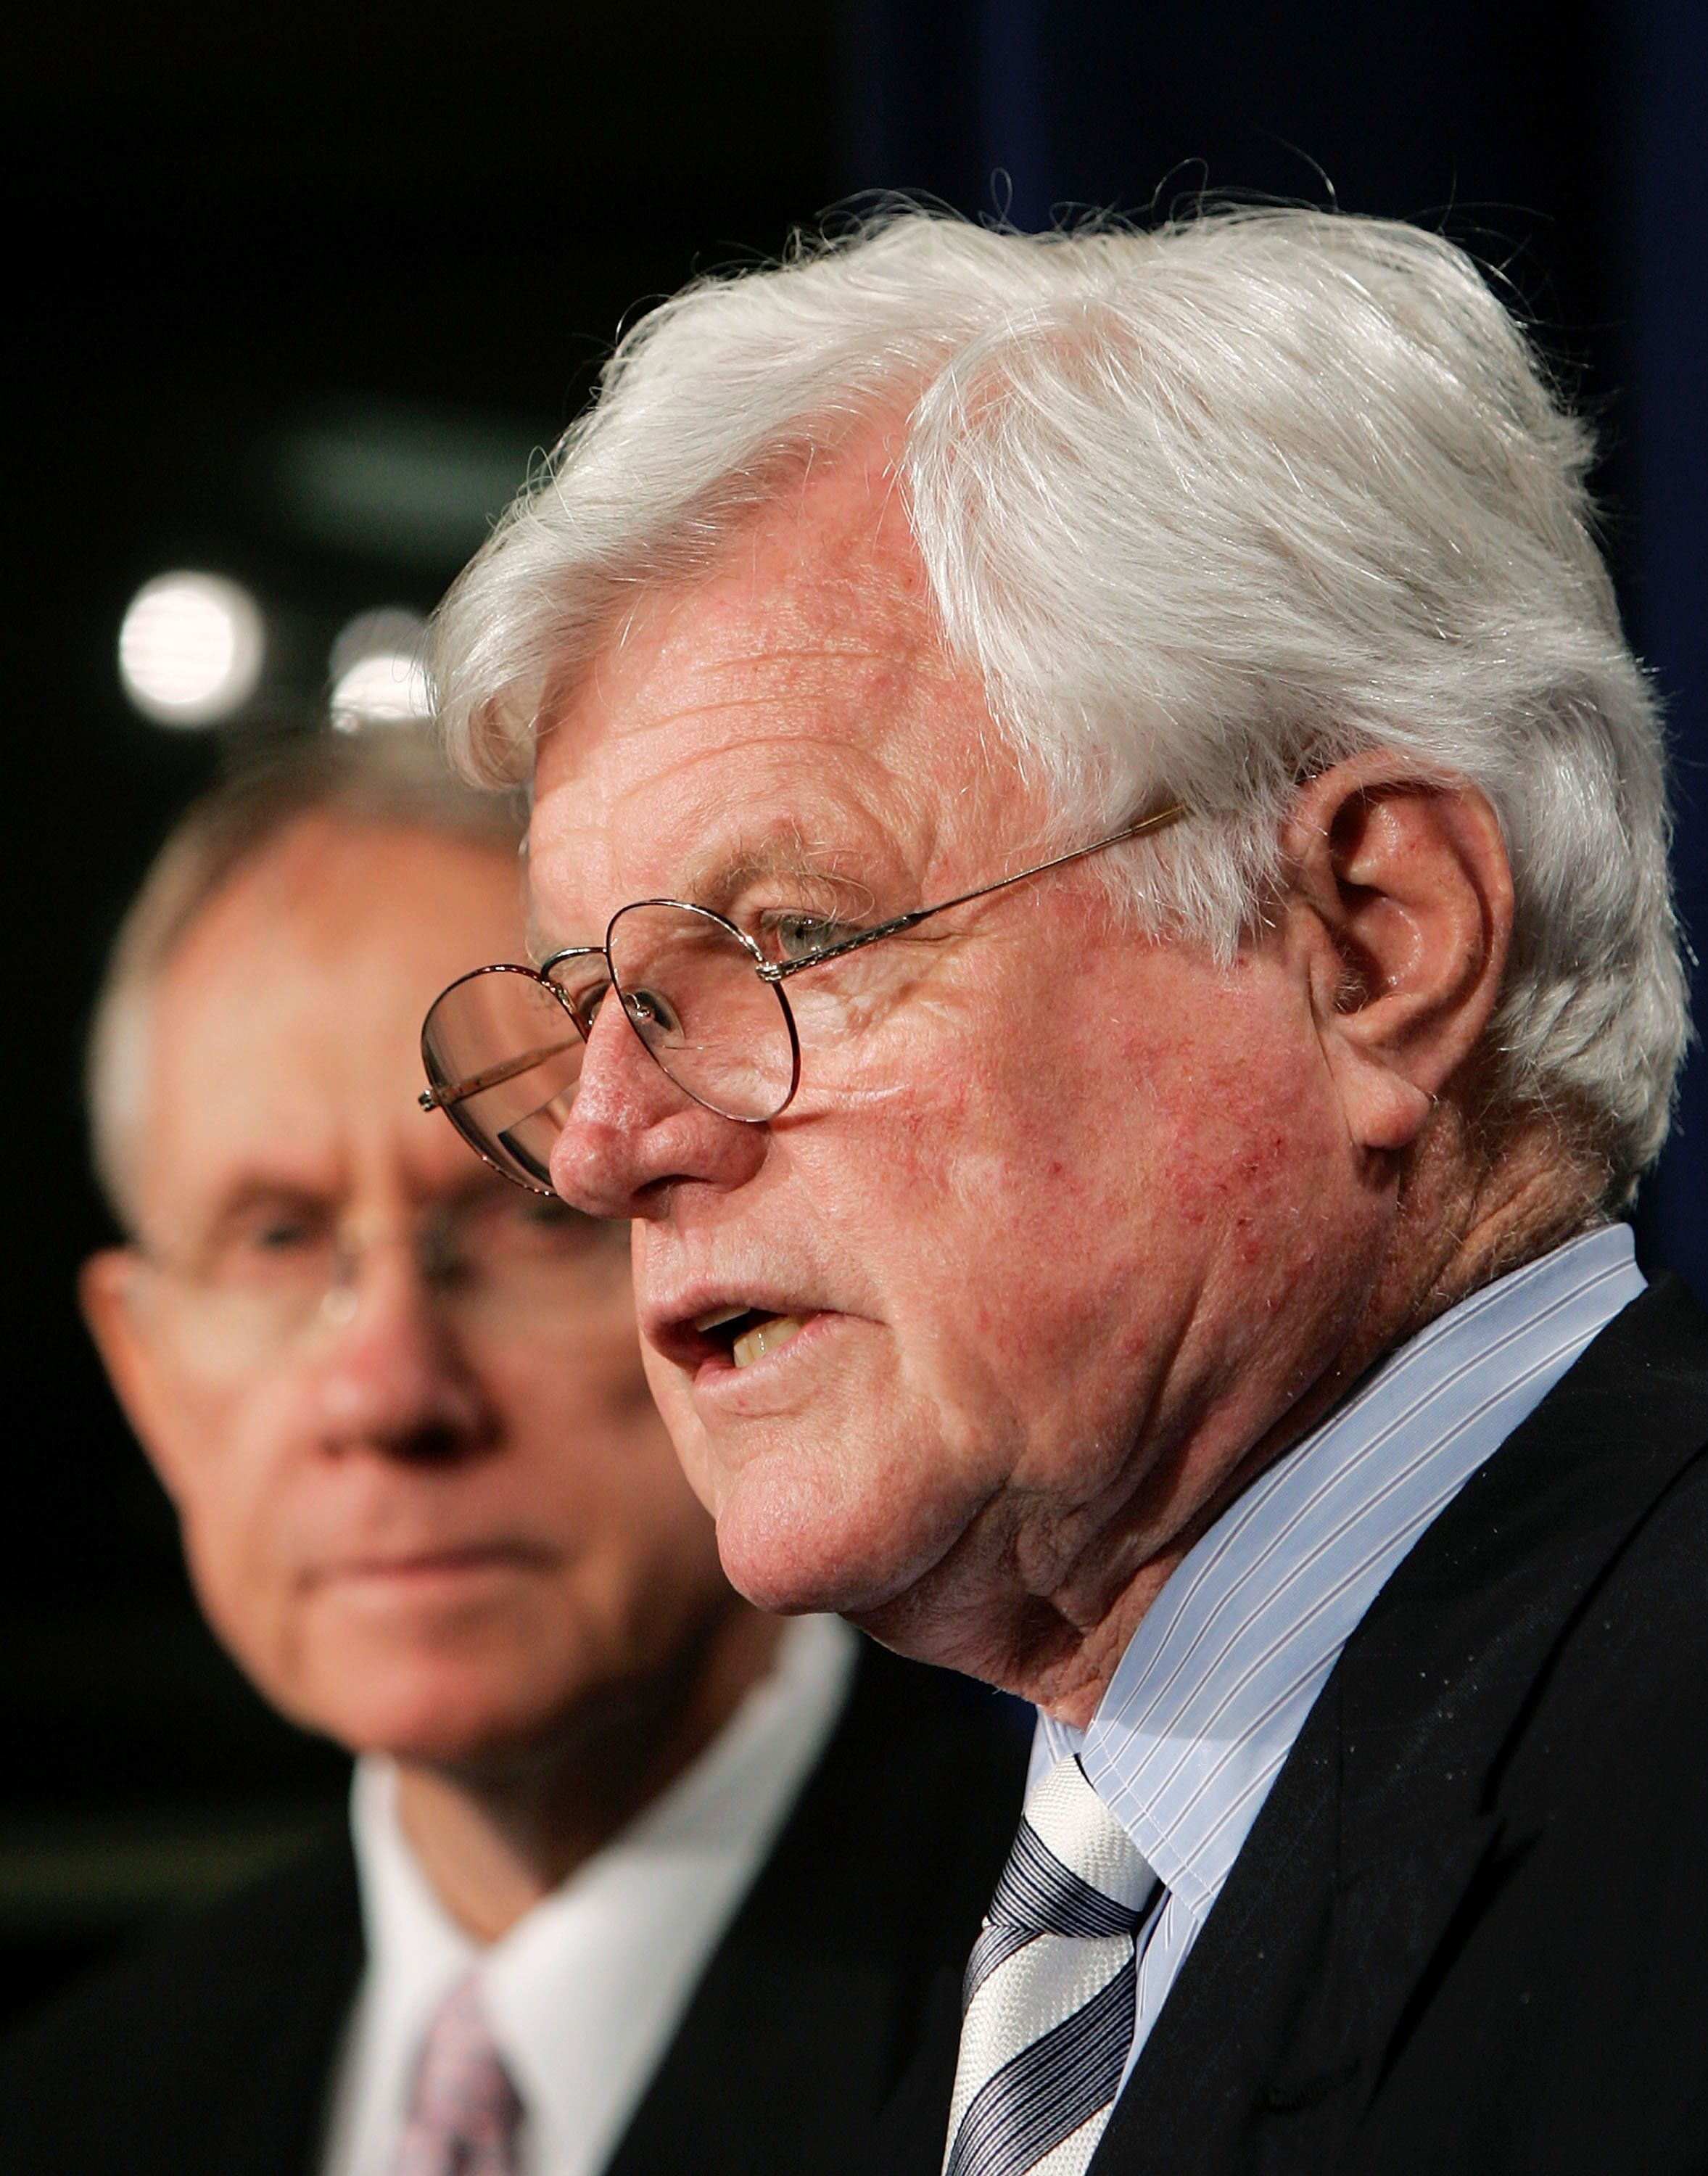 WASHINGTON - JUNE 23:  U.S. Sen. Ted Kennedy (D-MA) speaks with Senate Majority Leader Harry Reid (D-NV) during a news conference urging President George W. Bush to consult the Senate regarding any nominations to the Supreme Court June 23, 2005 in Washington, DC. Speculation continues that Supreme Court Chief Justice William Rehnquist may step down at the end of the Supreme Court's current session.  (Photo by Win McNamee/Getty Images)